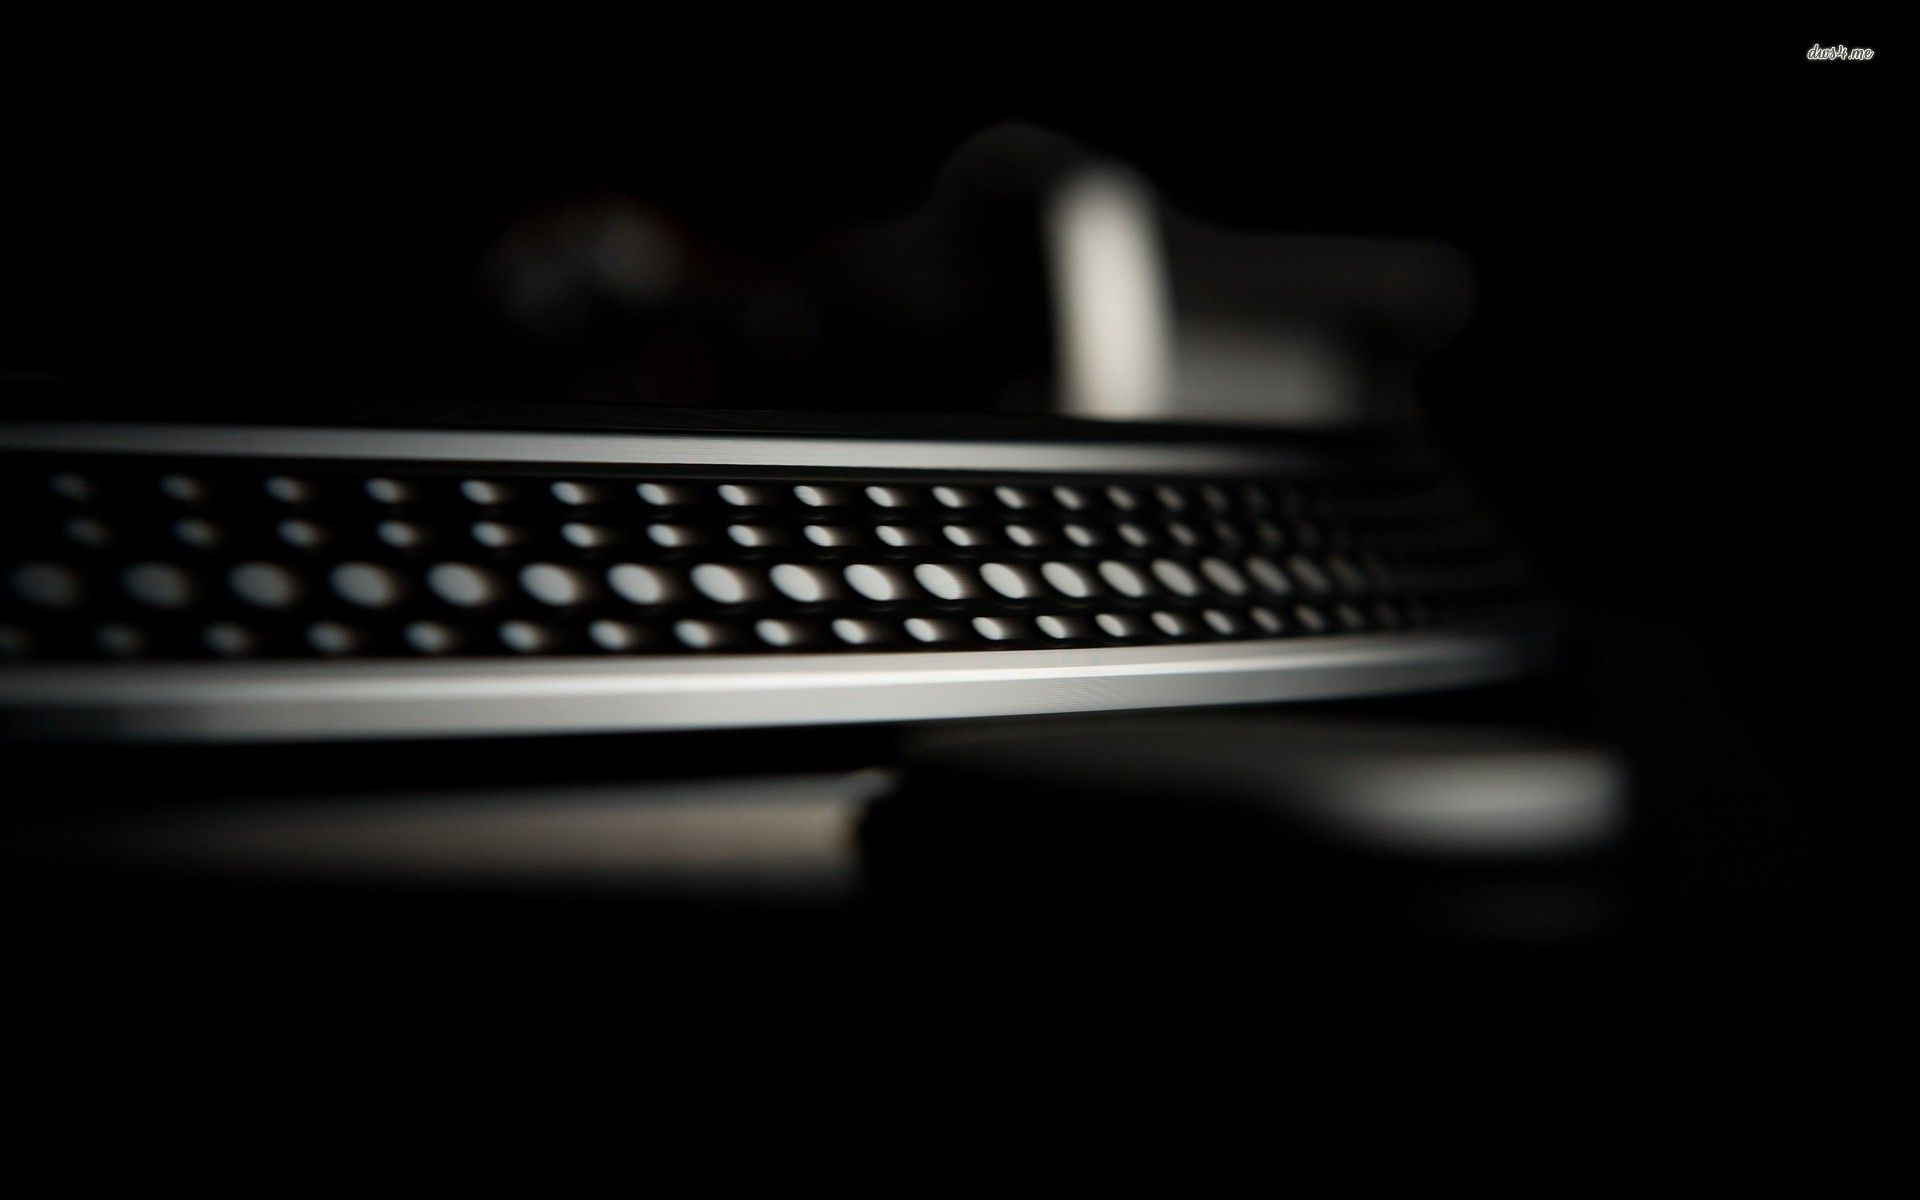 16464-turntable-1920x1200-music-wallpaper.jpg 1.920×1.200 piksel